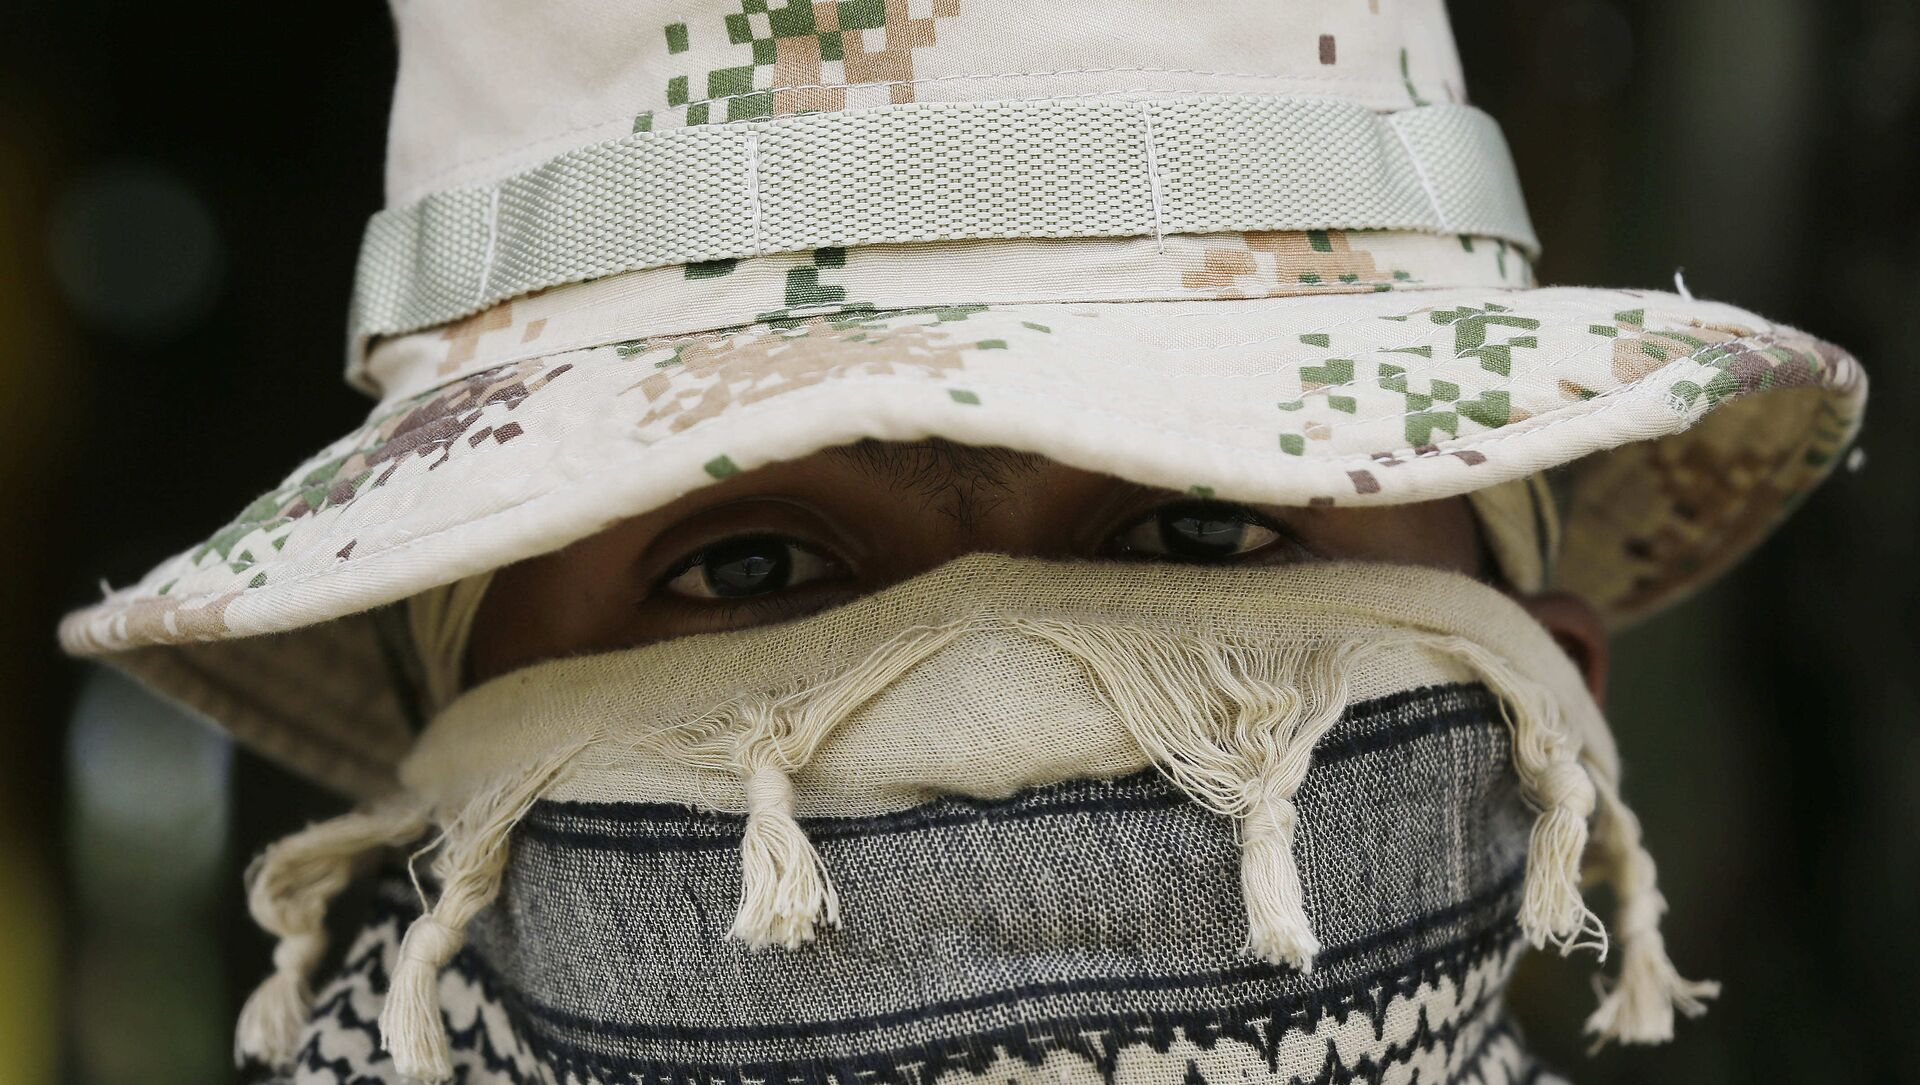 A Colombian Army Special Forces soldier waits to take part in a show of military exercises at the Tolemaida military base - Sputnik International, 1920, 28.07.2021